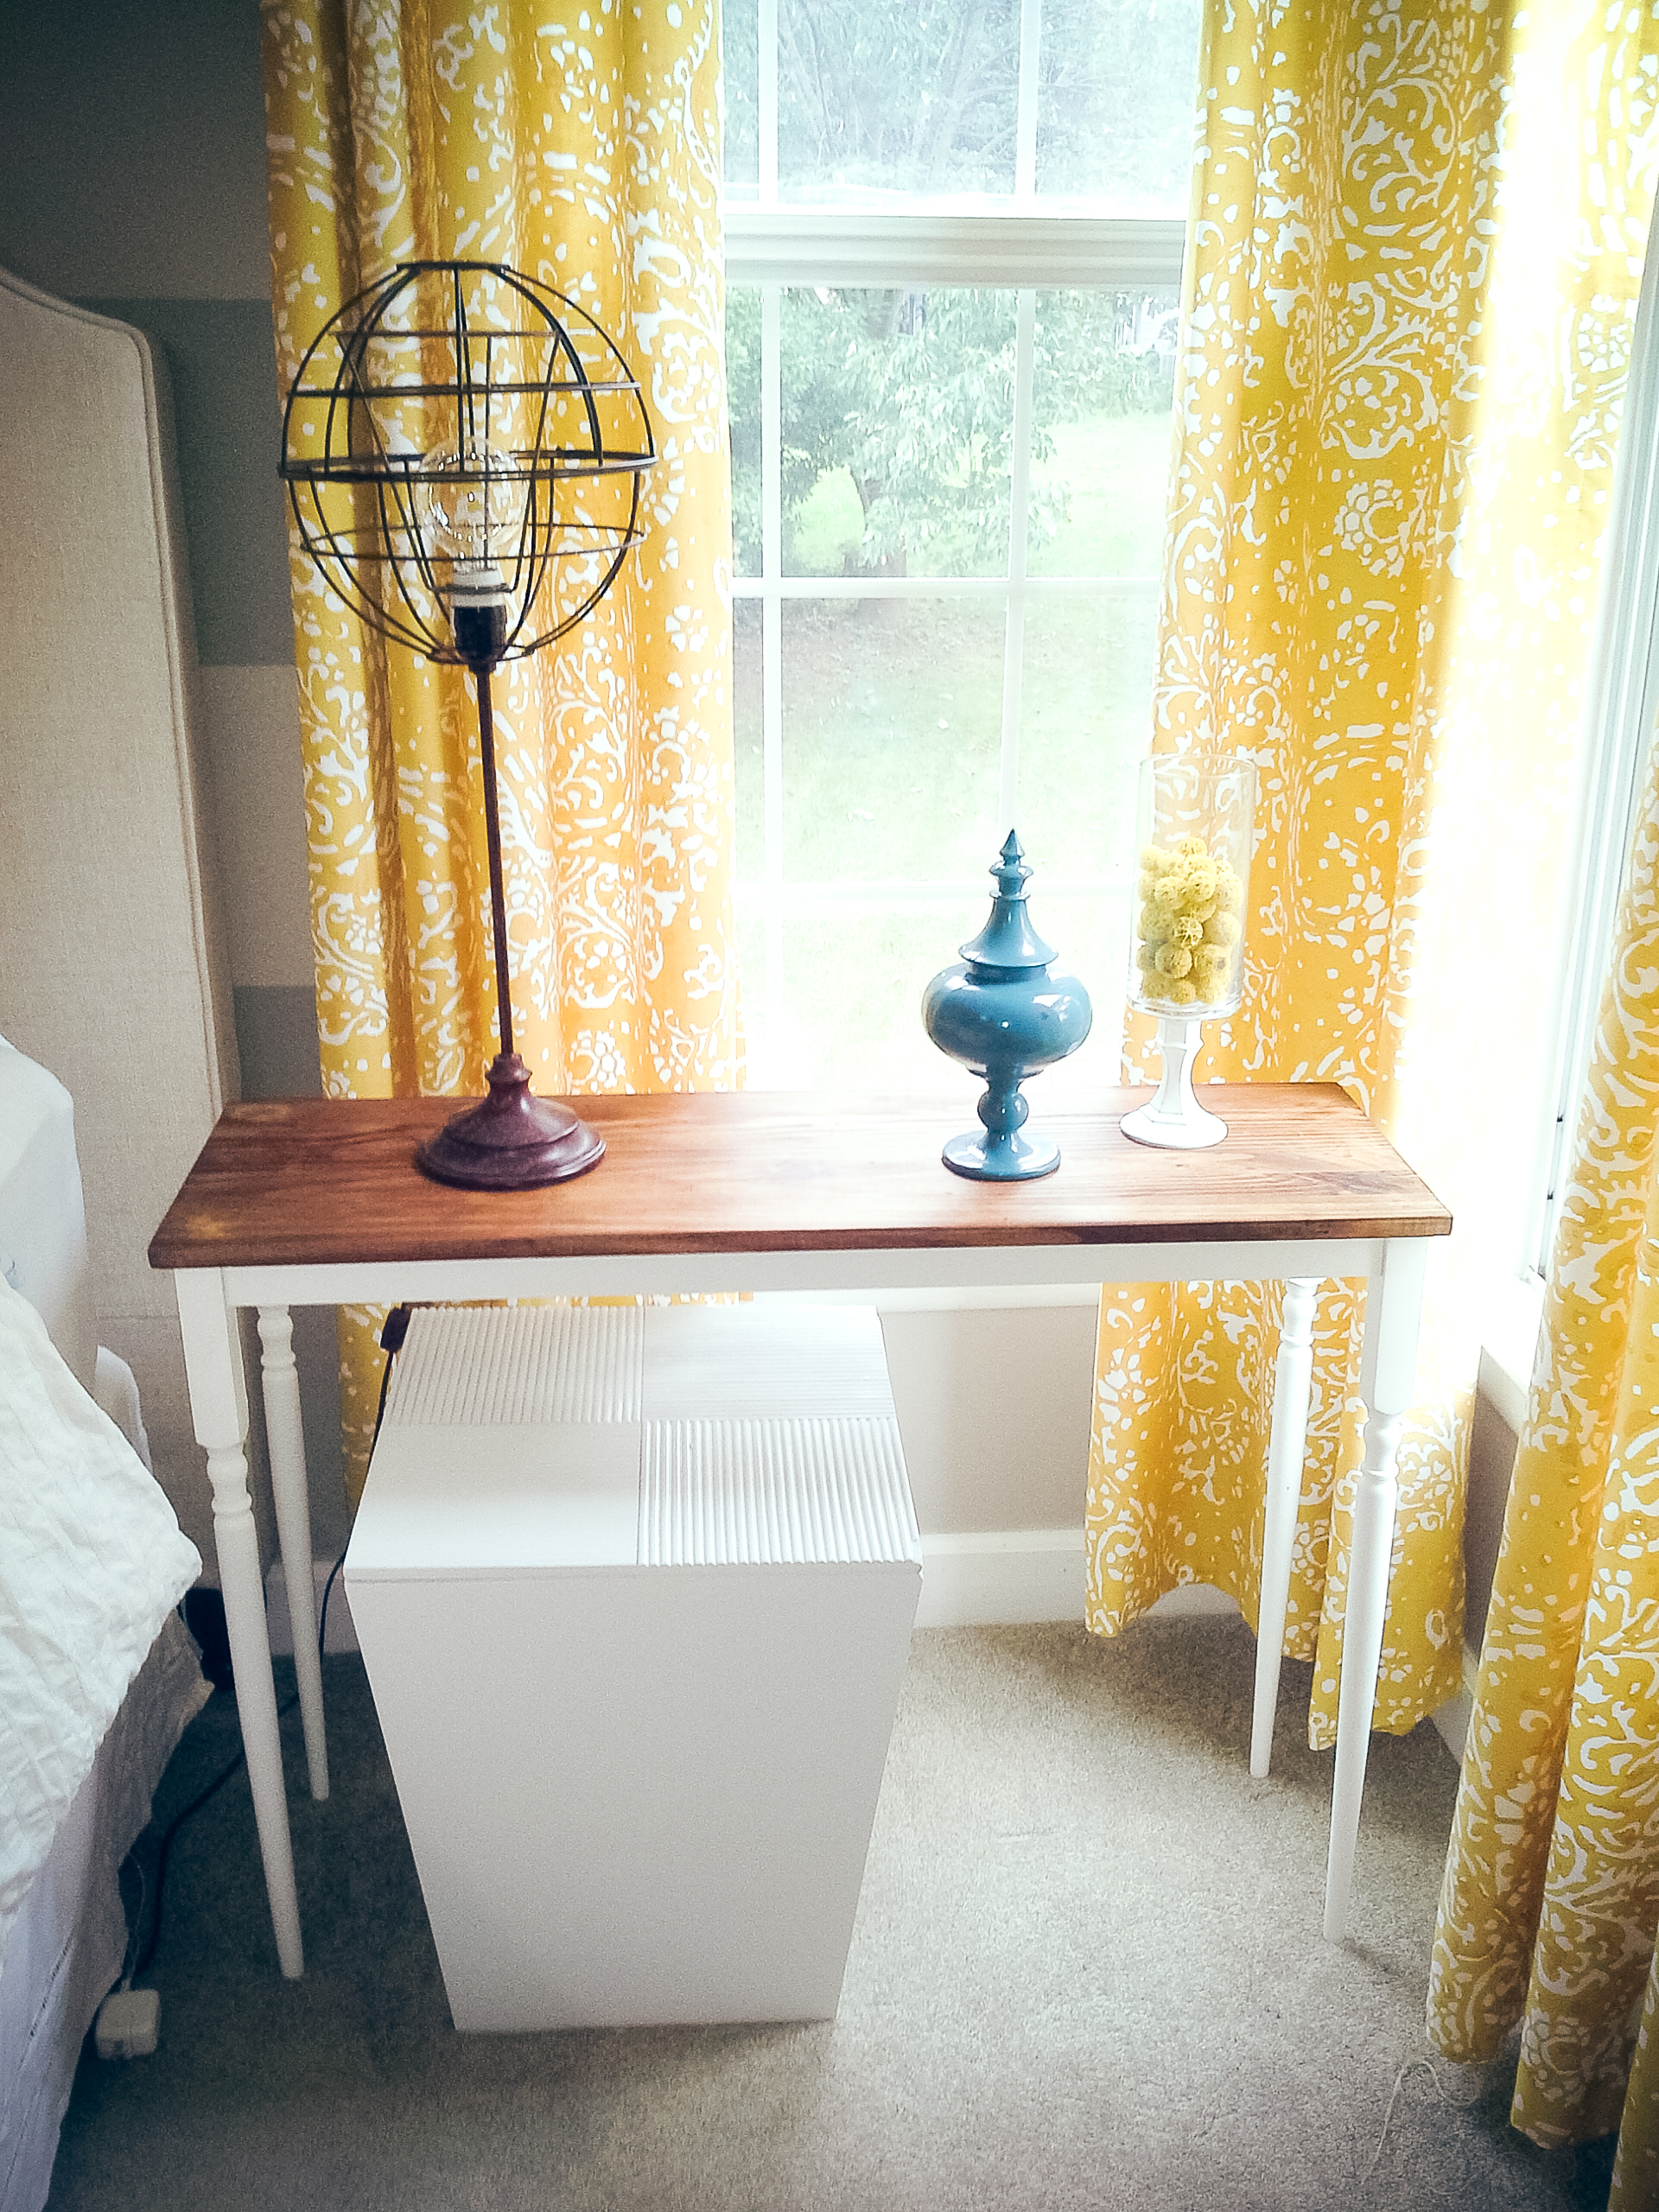 I actually made two lampshades and place them in our master bedroom! I LOVE how they turned out! :)